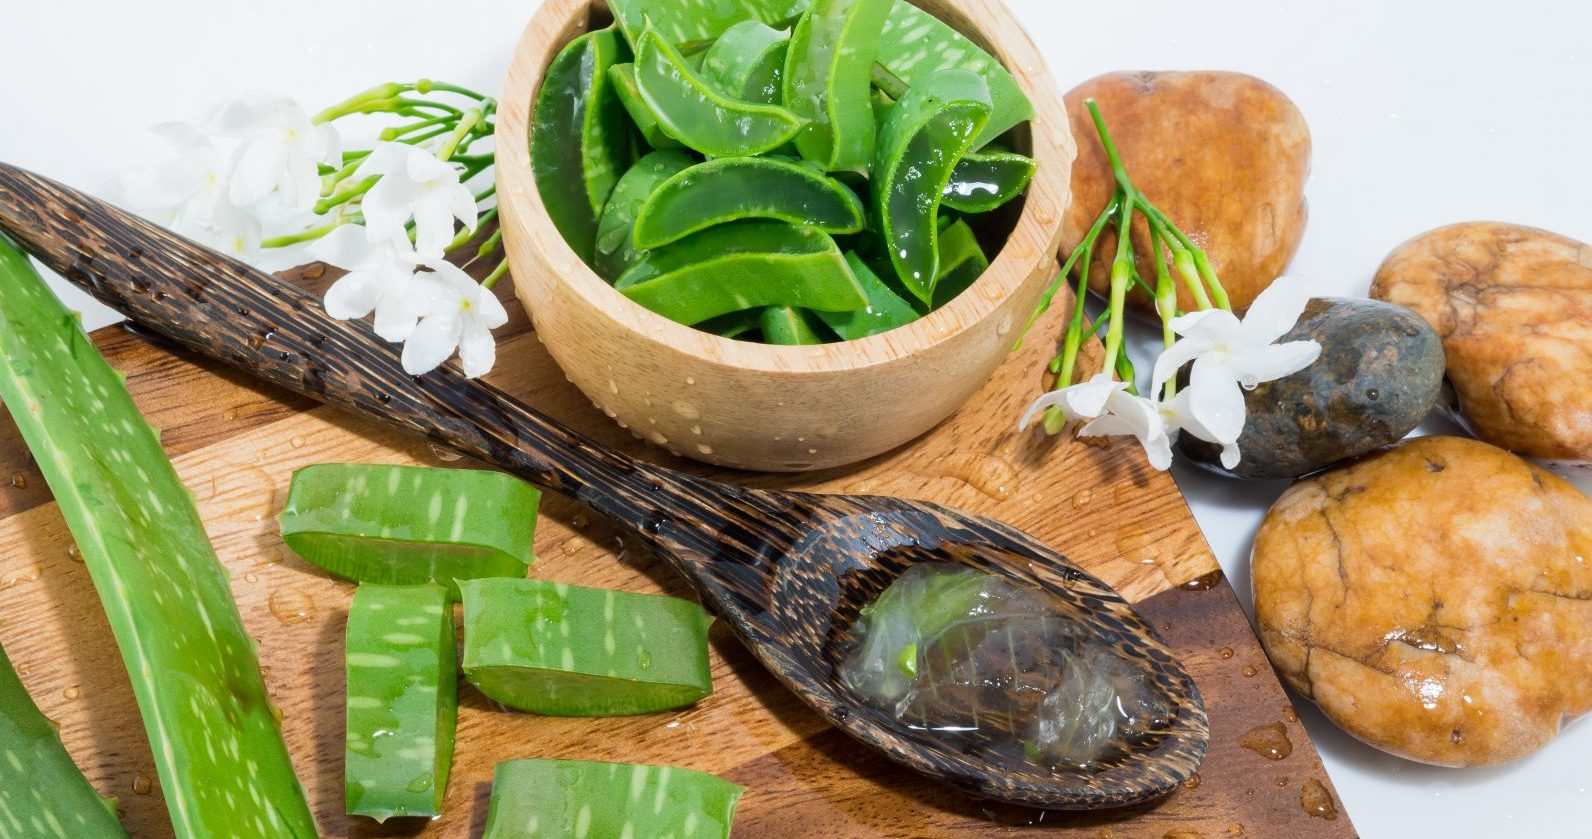 Sommer-Massage Aloe Vera Massage hat ihren Ursprung in der traditionellen Thai-Massage